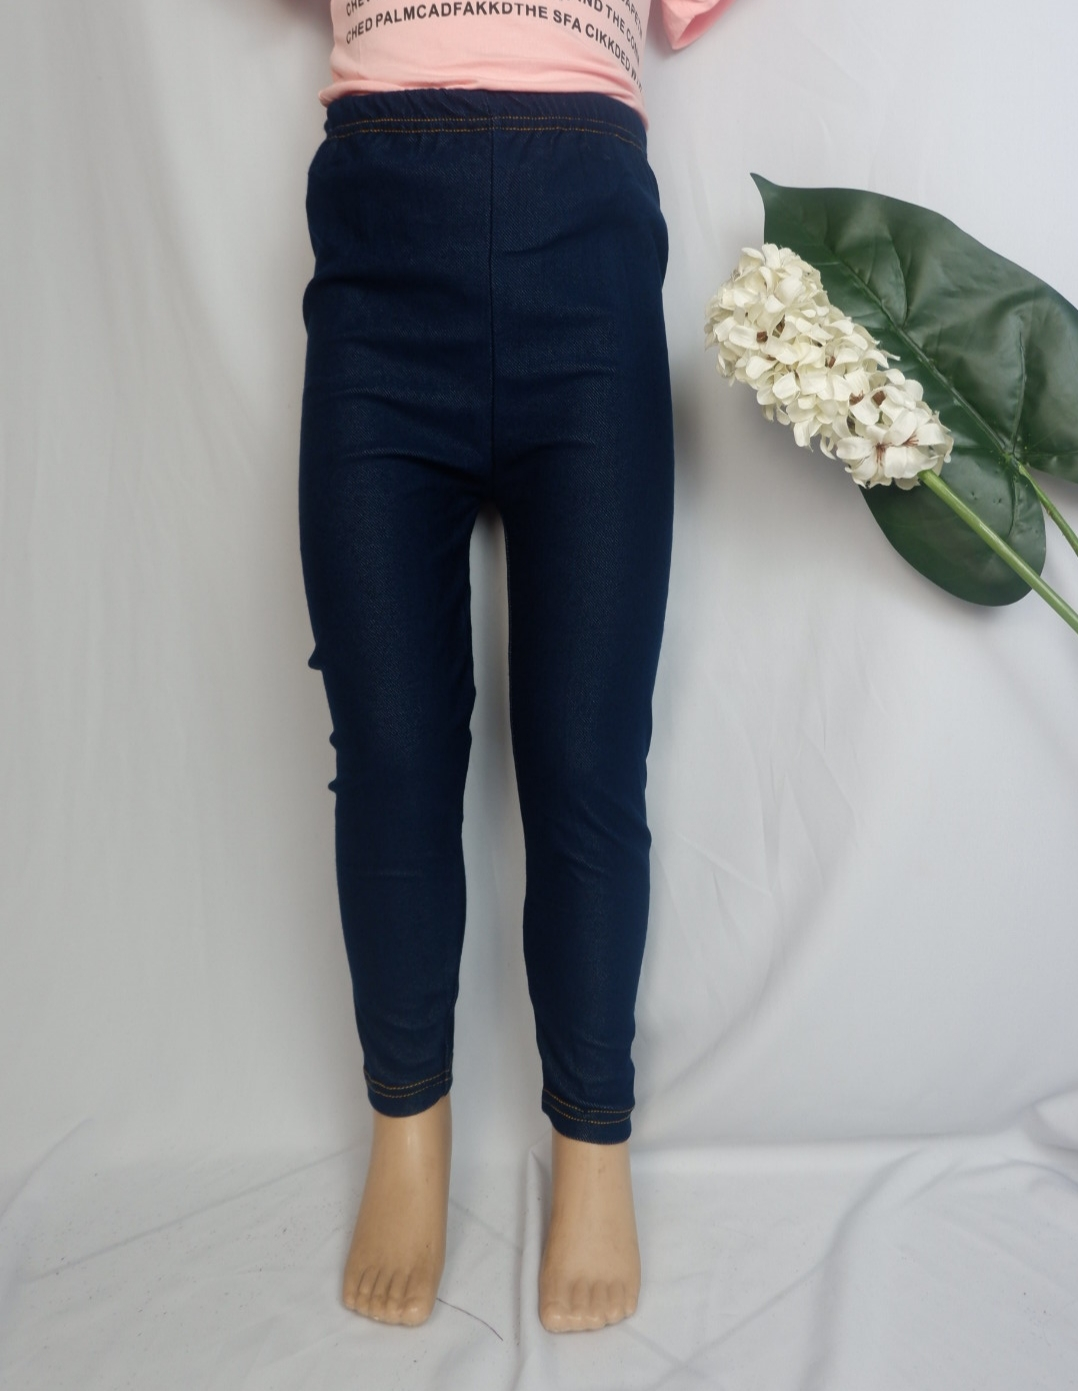 LEGING KIDDIE JEANS POLOS (CANKC010)